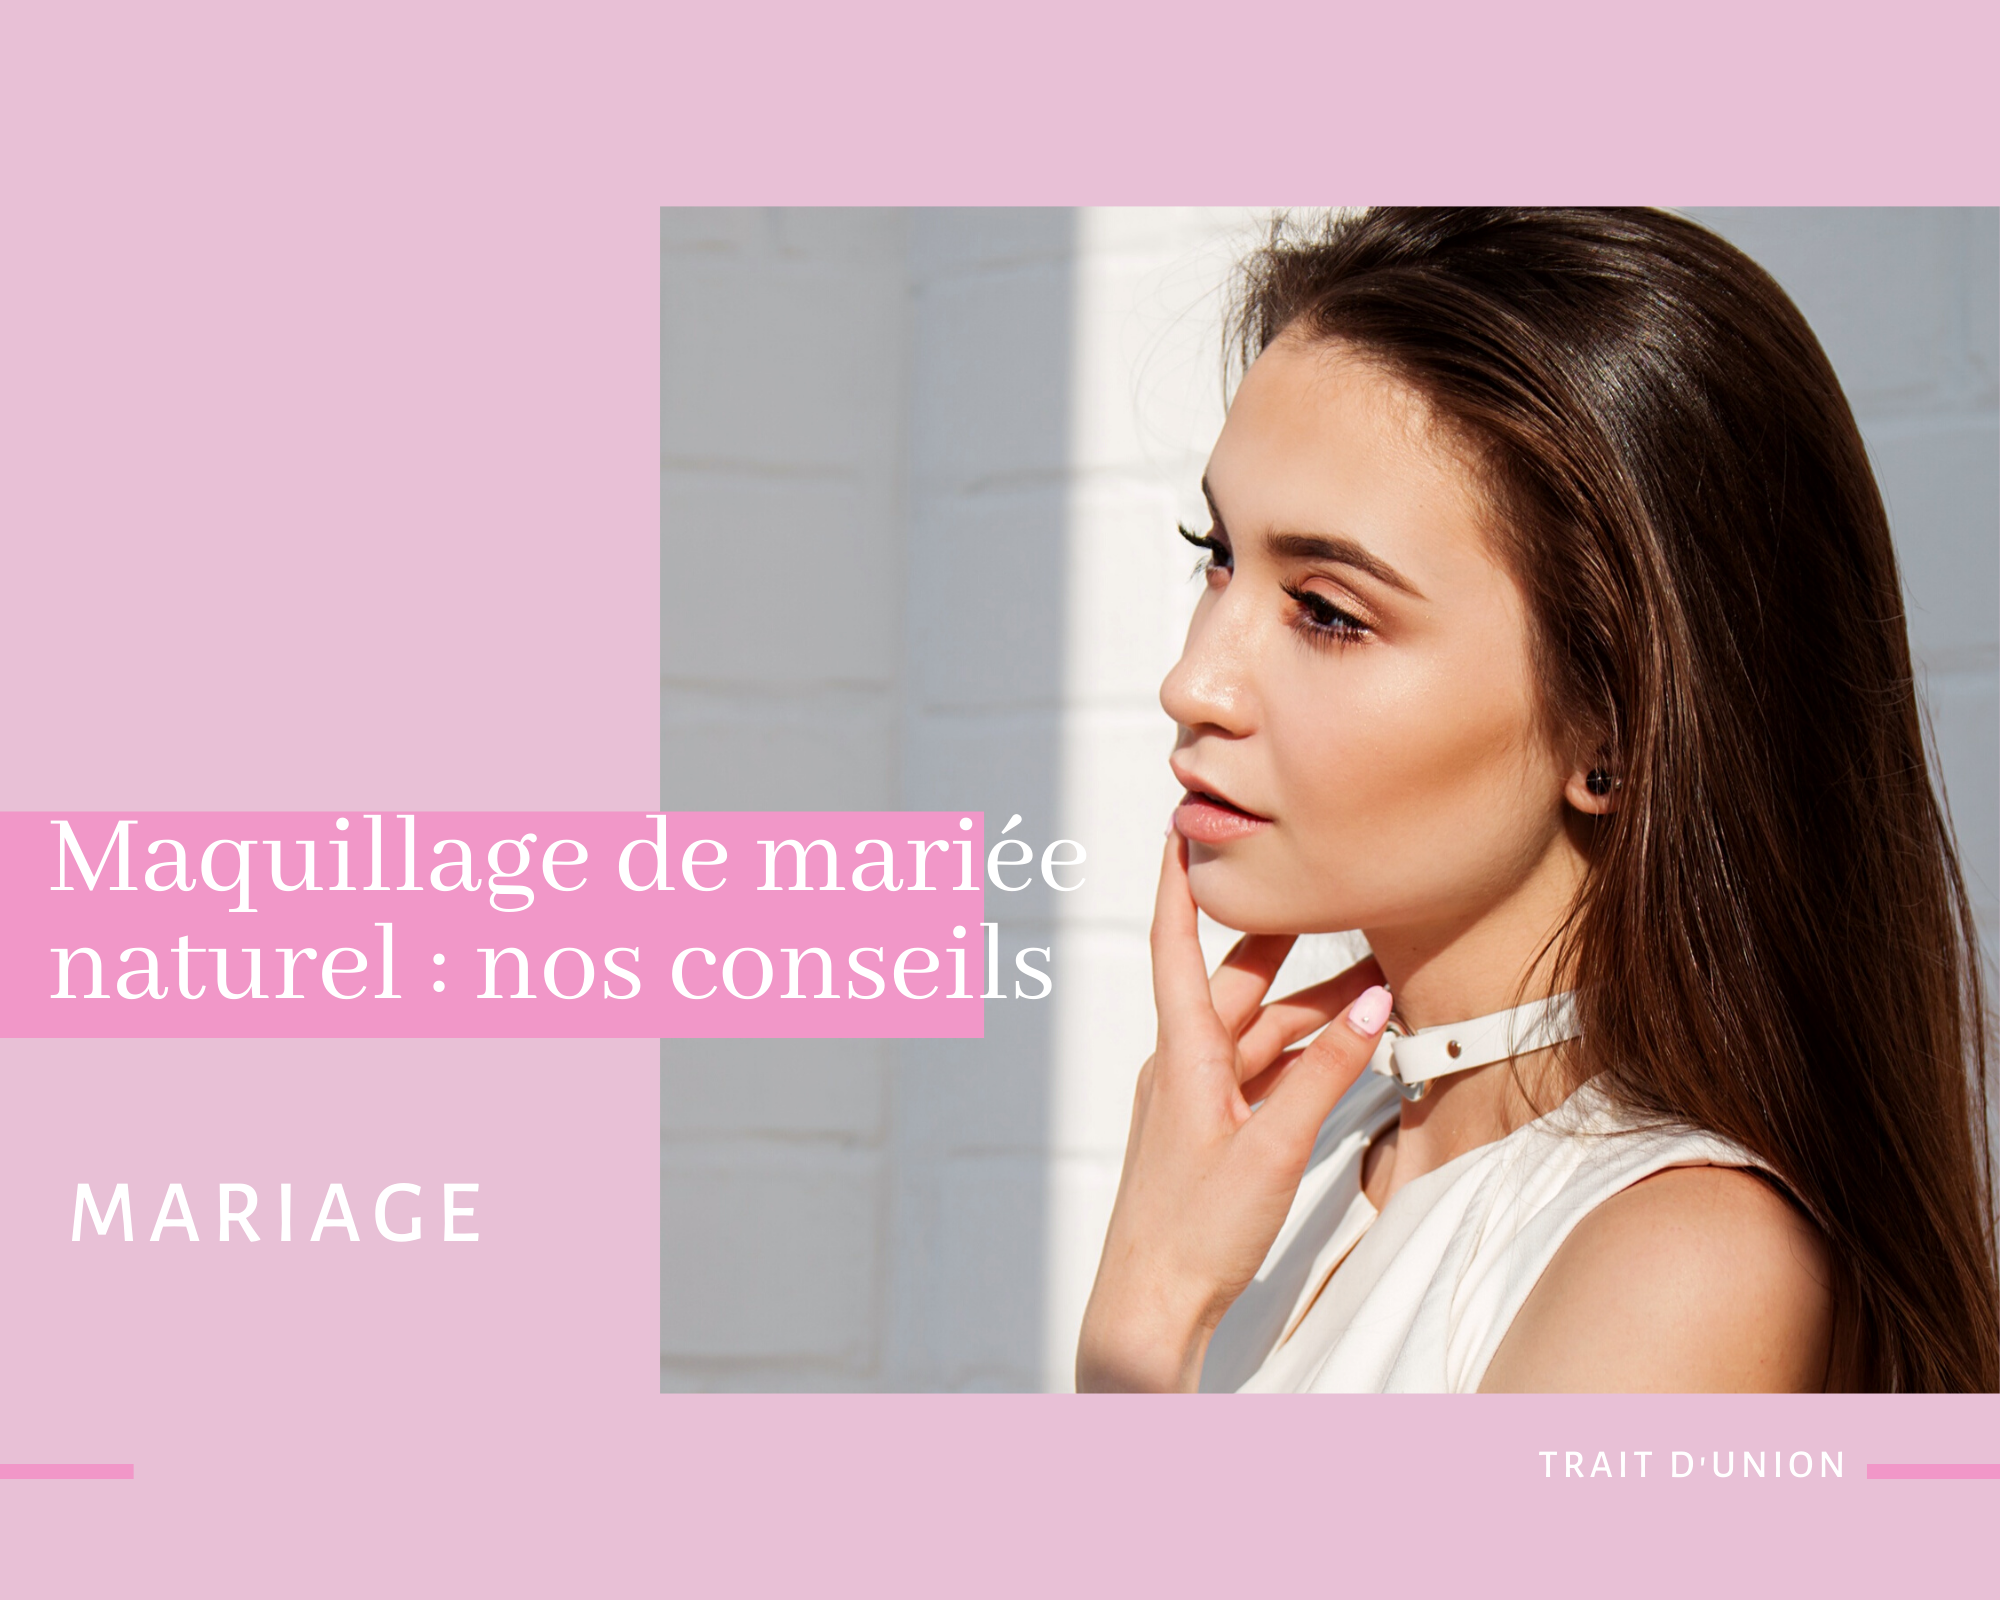 Maquillage de mariée naturel